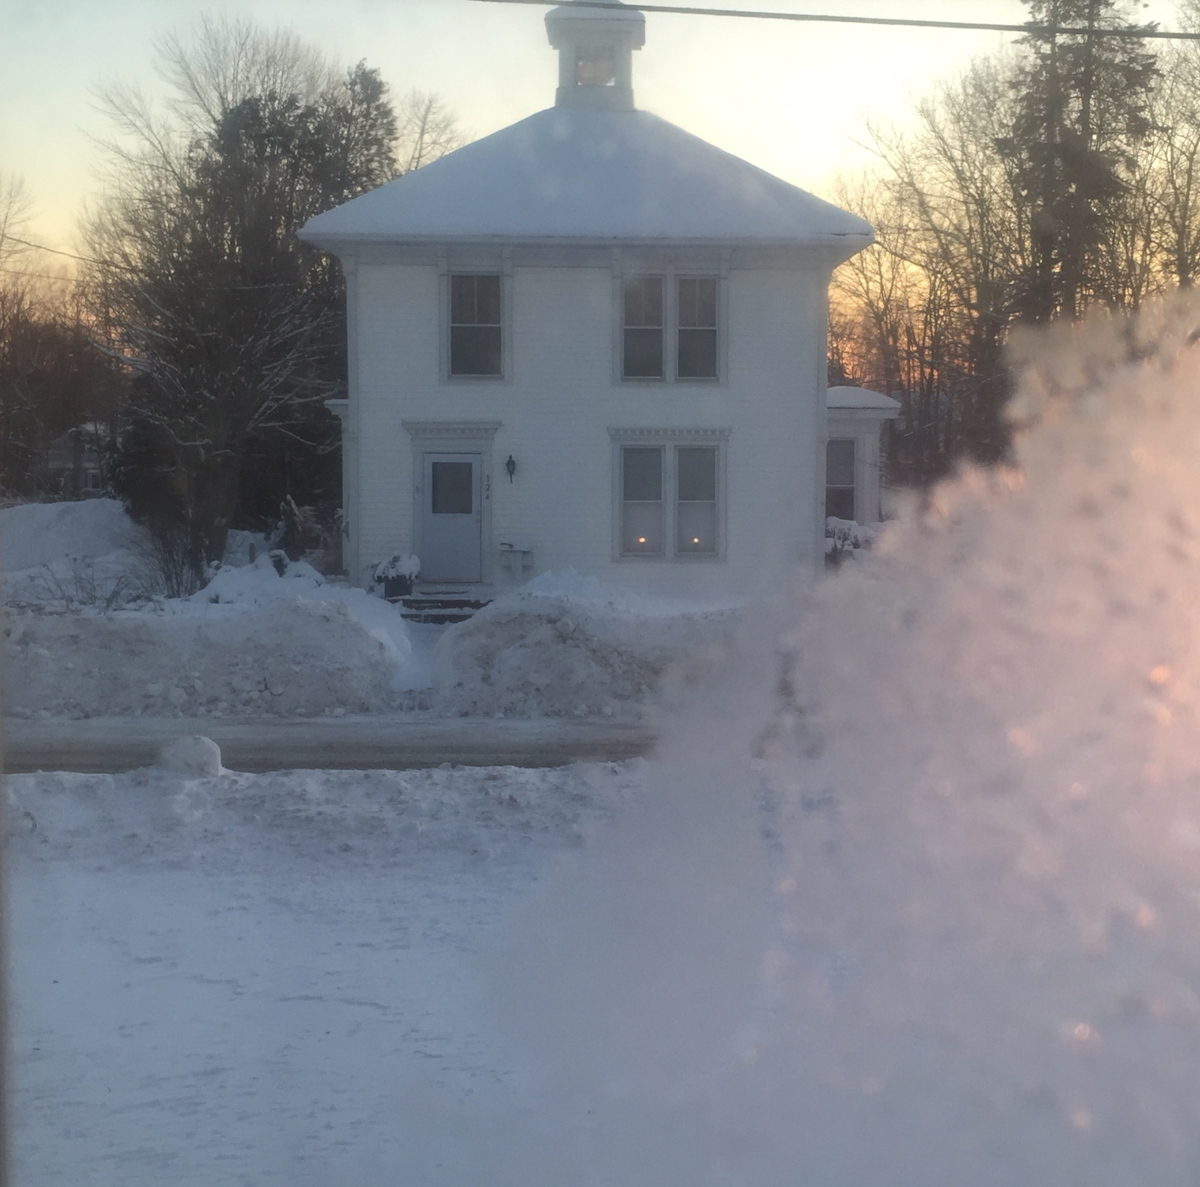 2.1 Two lights cold dawn white house (large view)